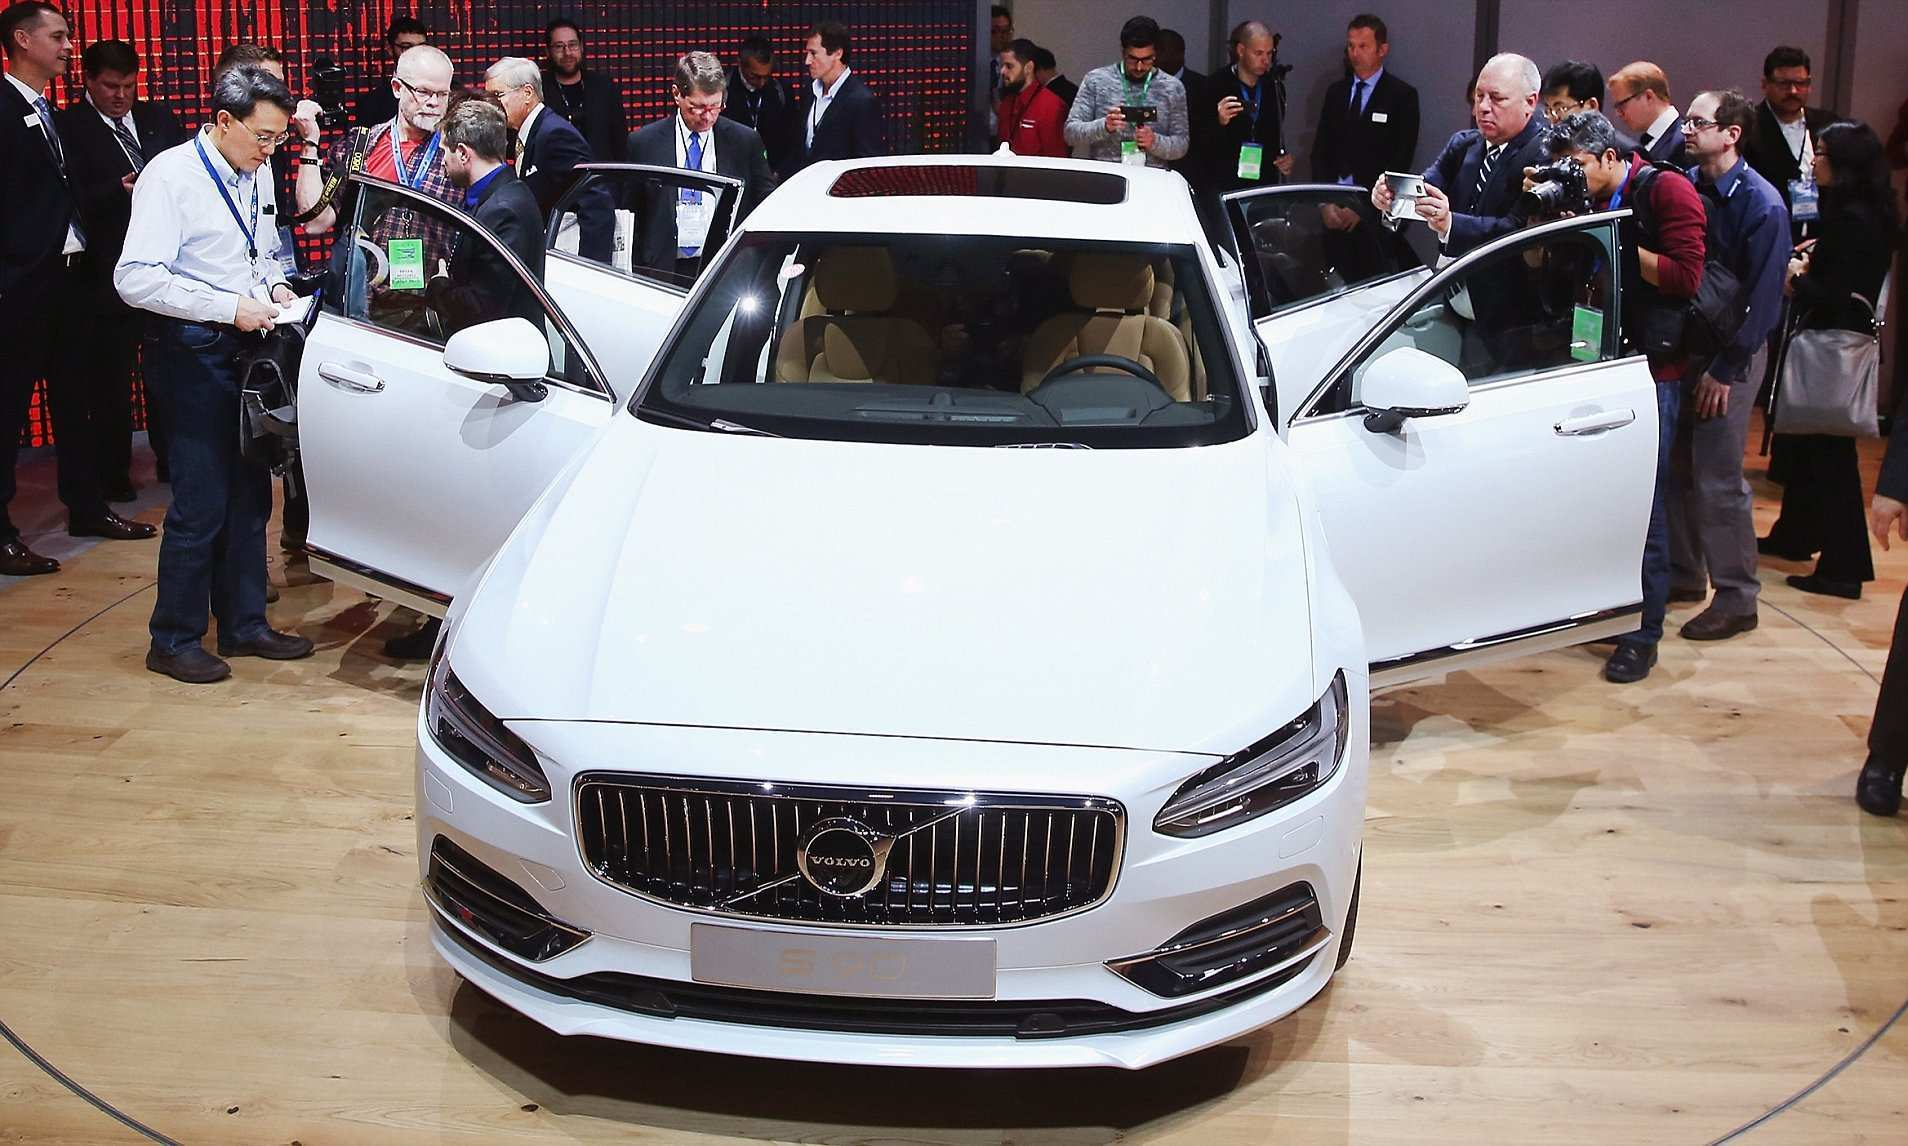 50 All New Volvo Crash Proof Car 2020 Images